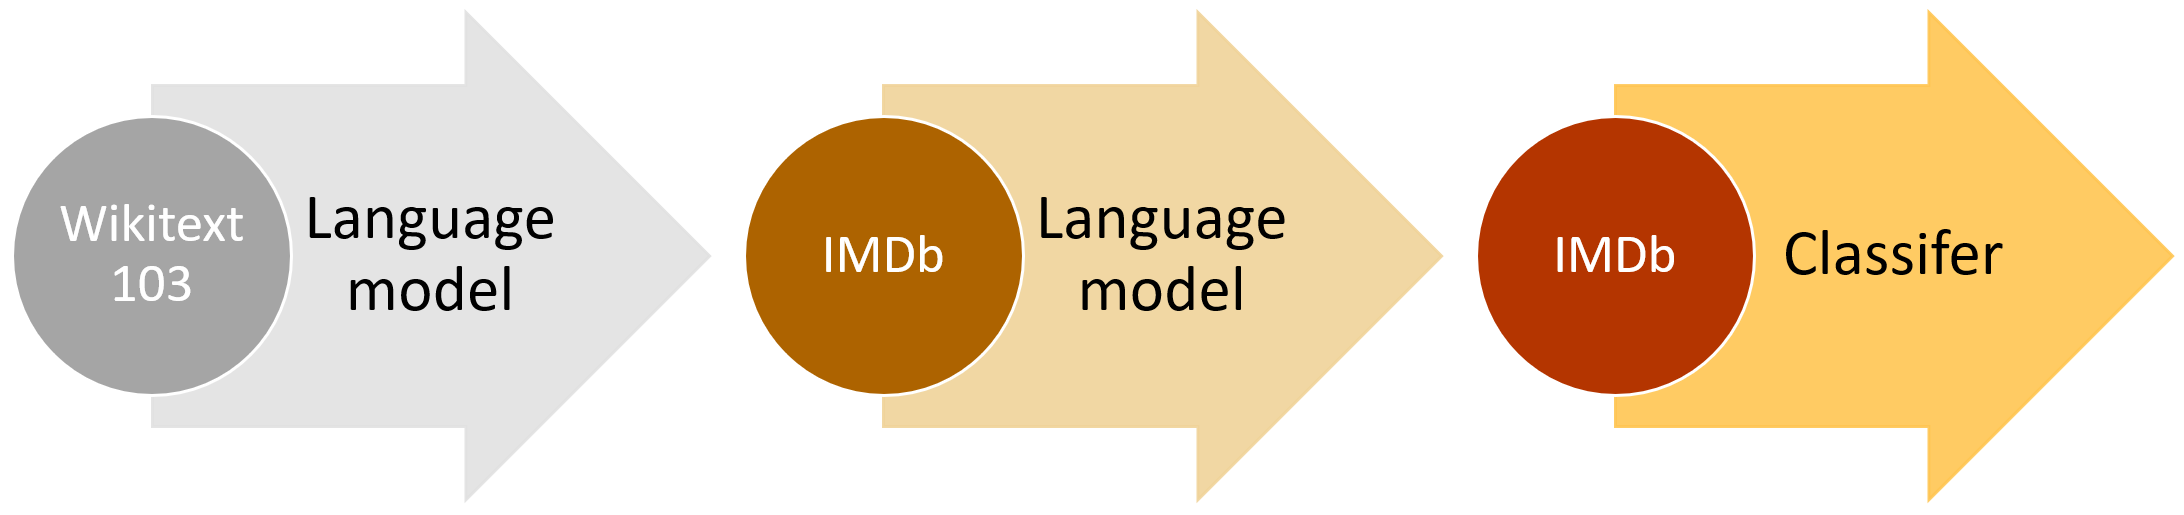 Introducing state of the art text classification with universal language models